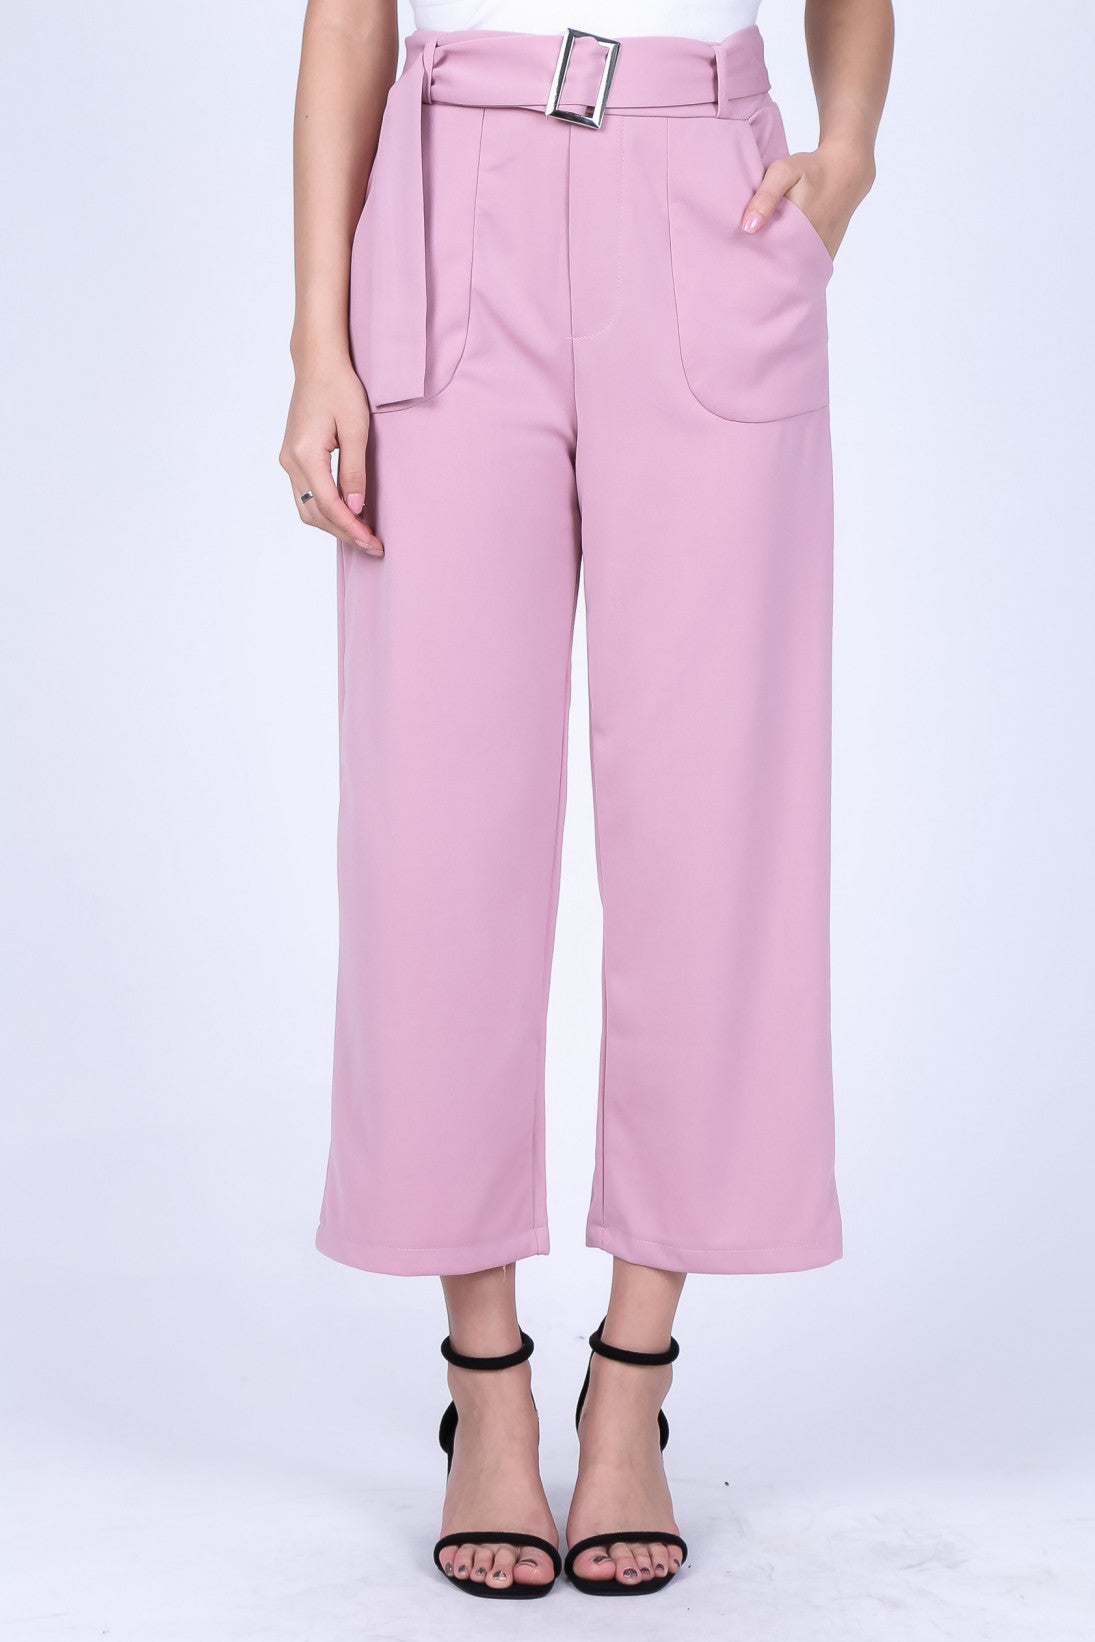 SHEA CULOTTES IN BABY PINK